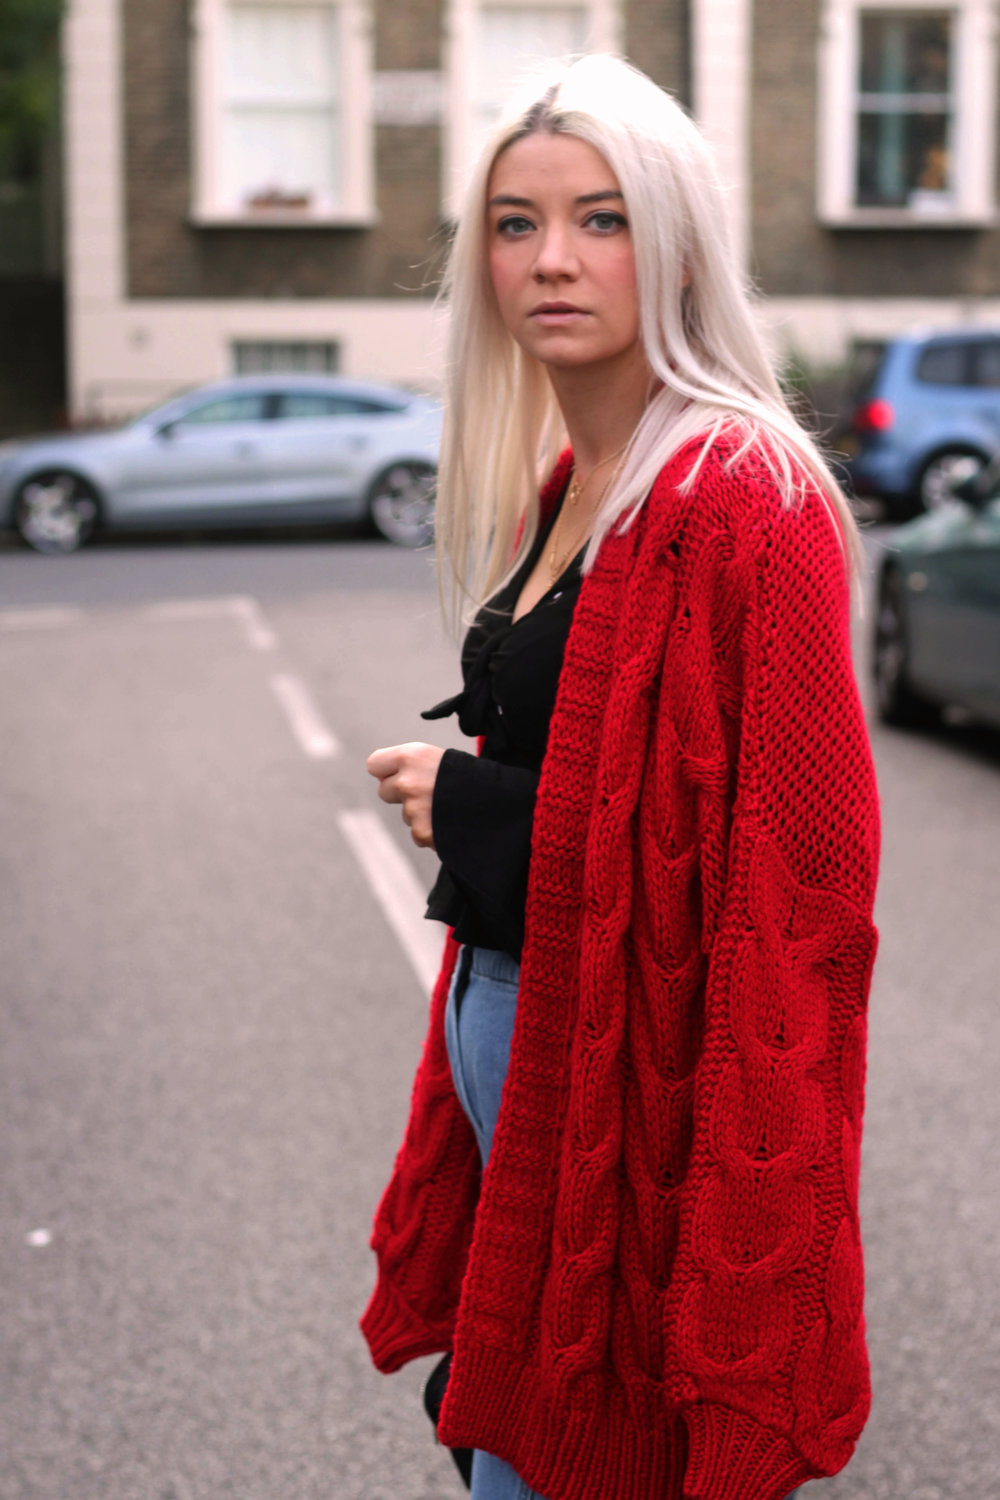 topshop jeans, next red cardigan, tie front ruffle top, ego boots, northern magpie, joey taylor 3